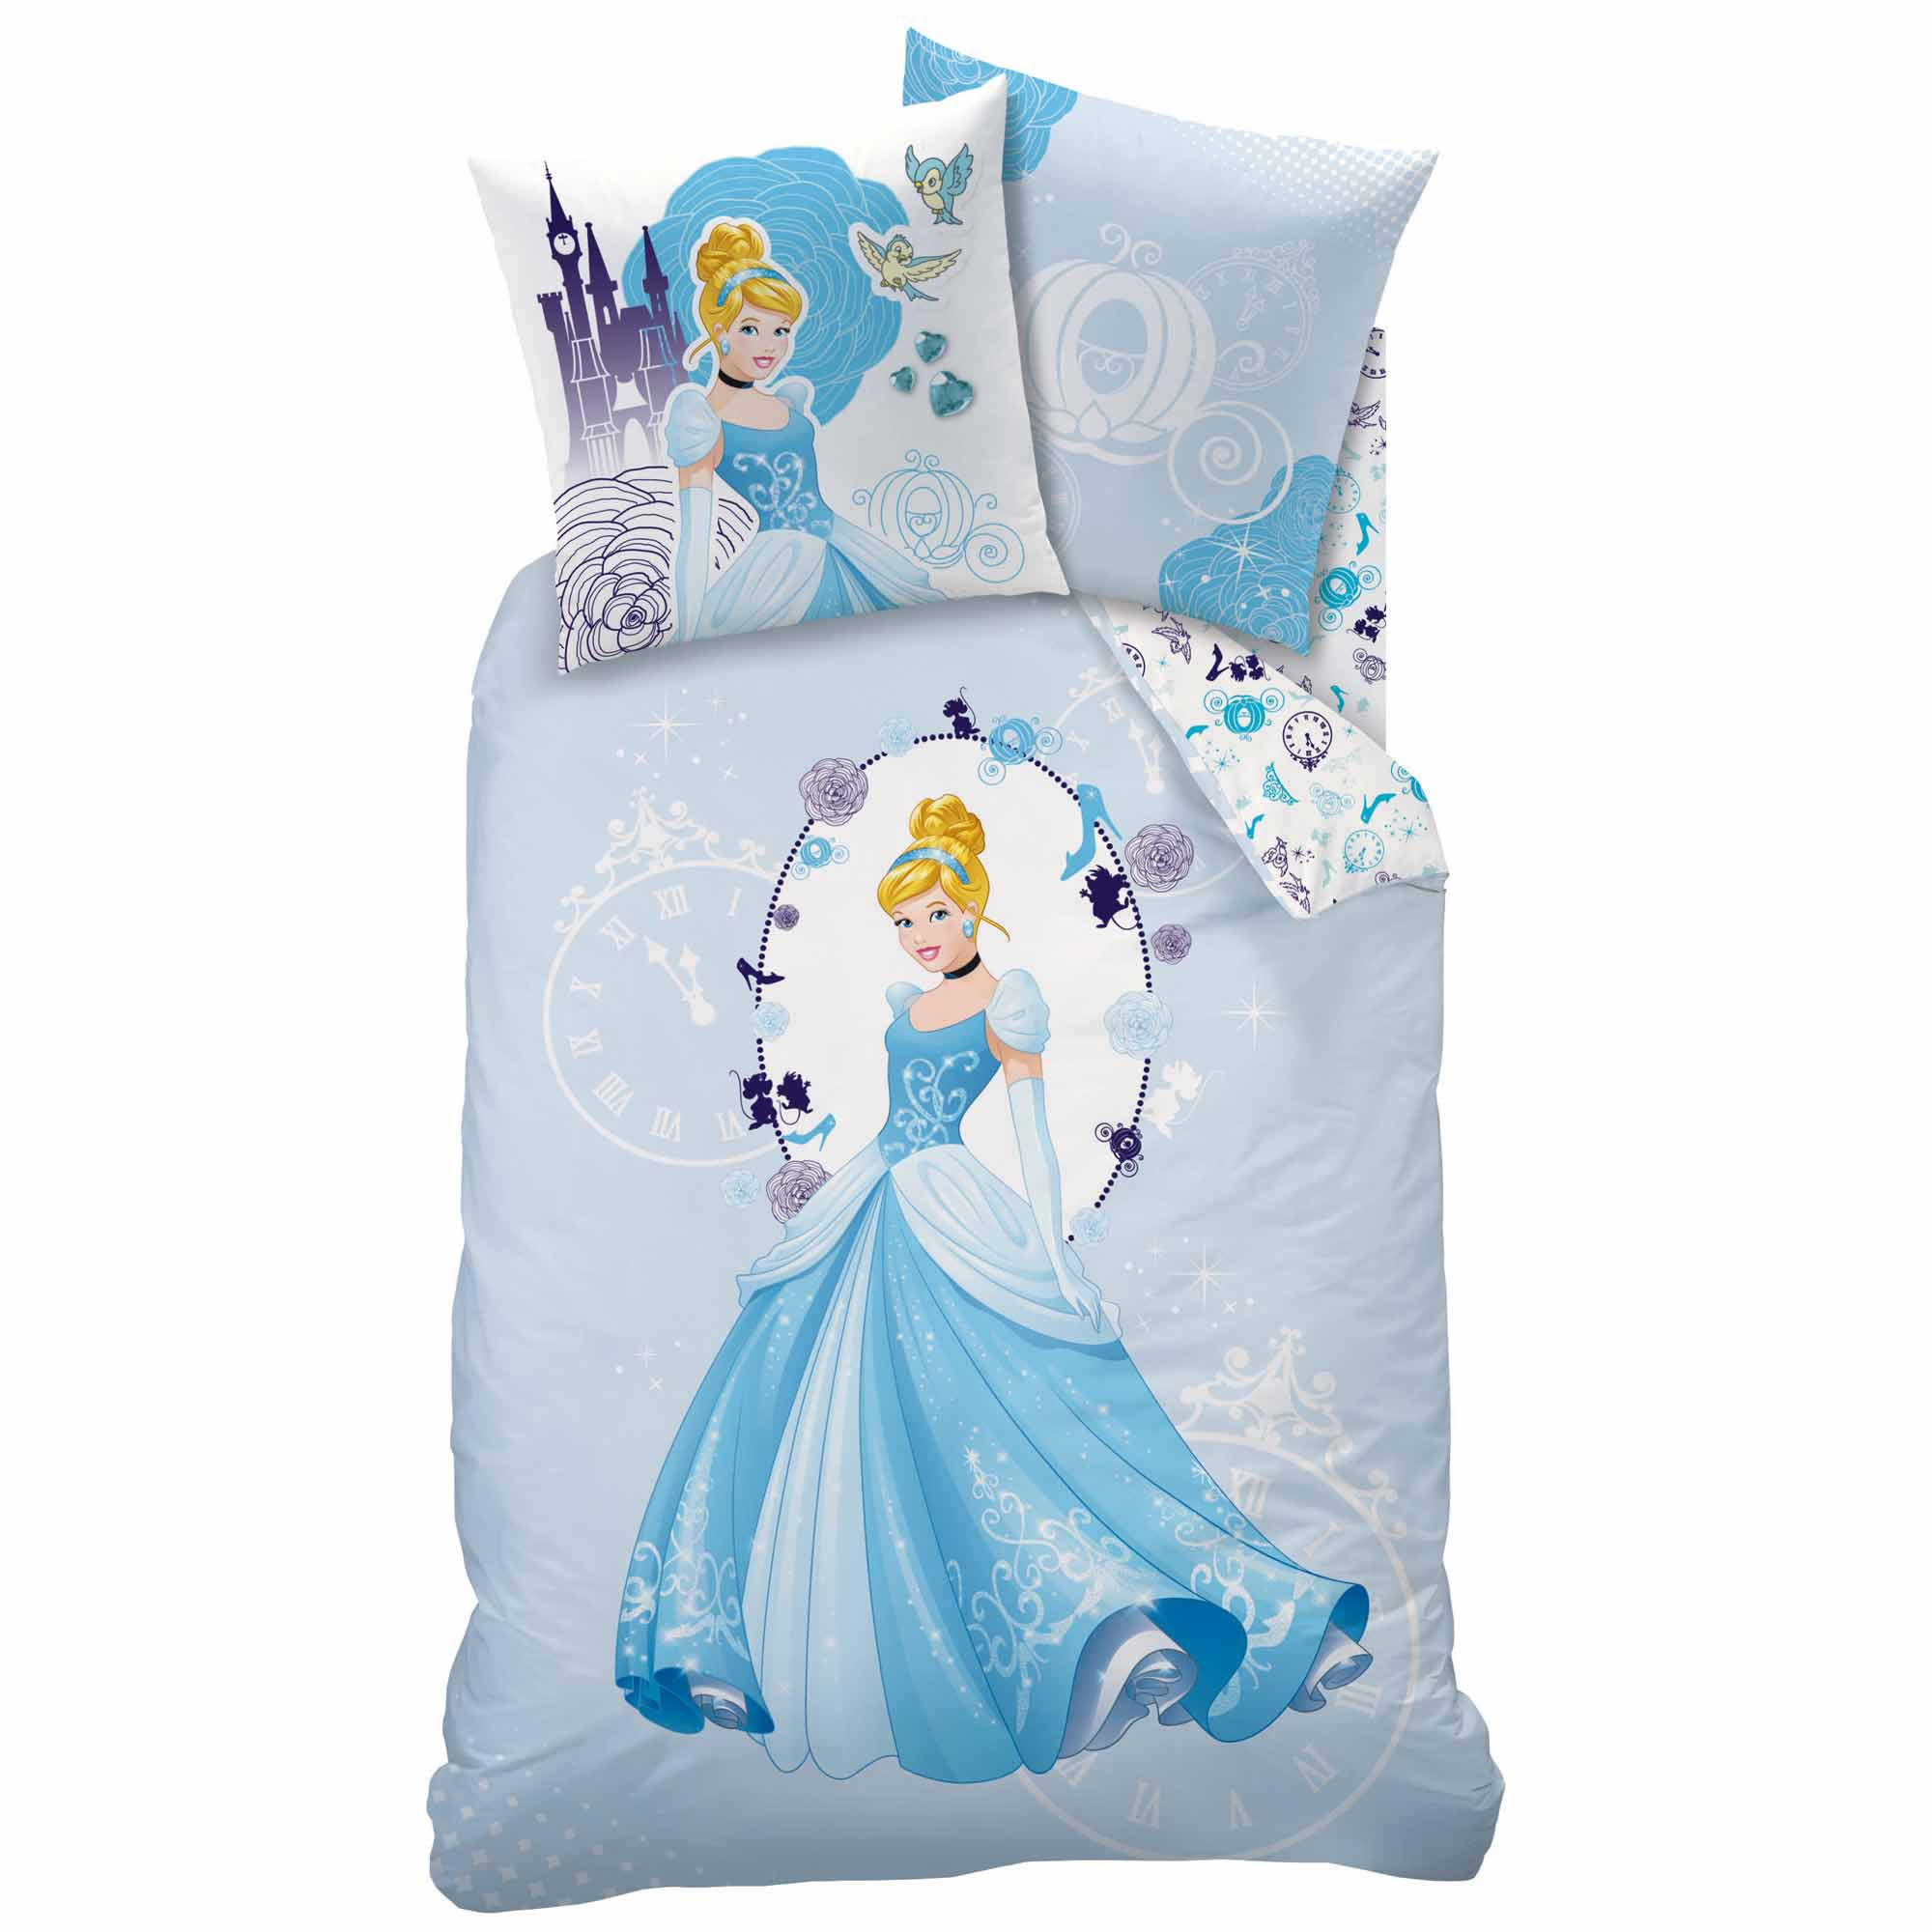 disney princesse parure de lit housse de couette cendrillon 140 x 200 cm cinderella. Black Bedroom Furniture Sets. Home Design Ideas